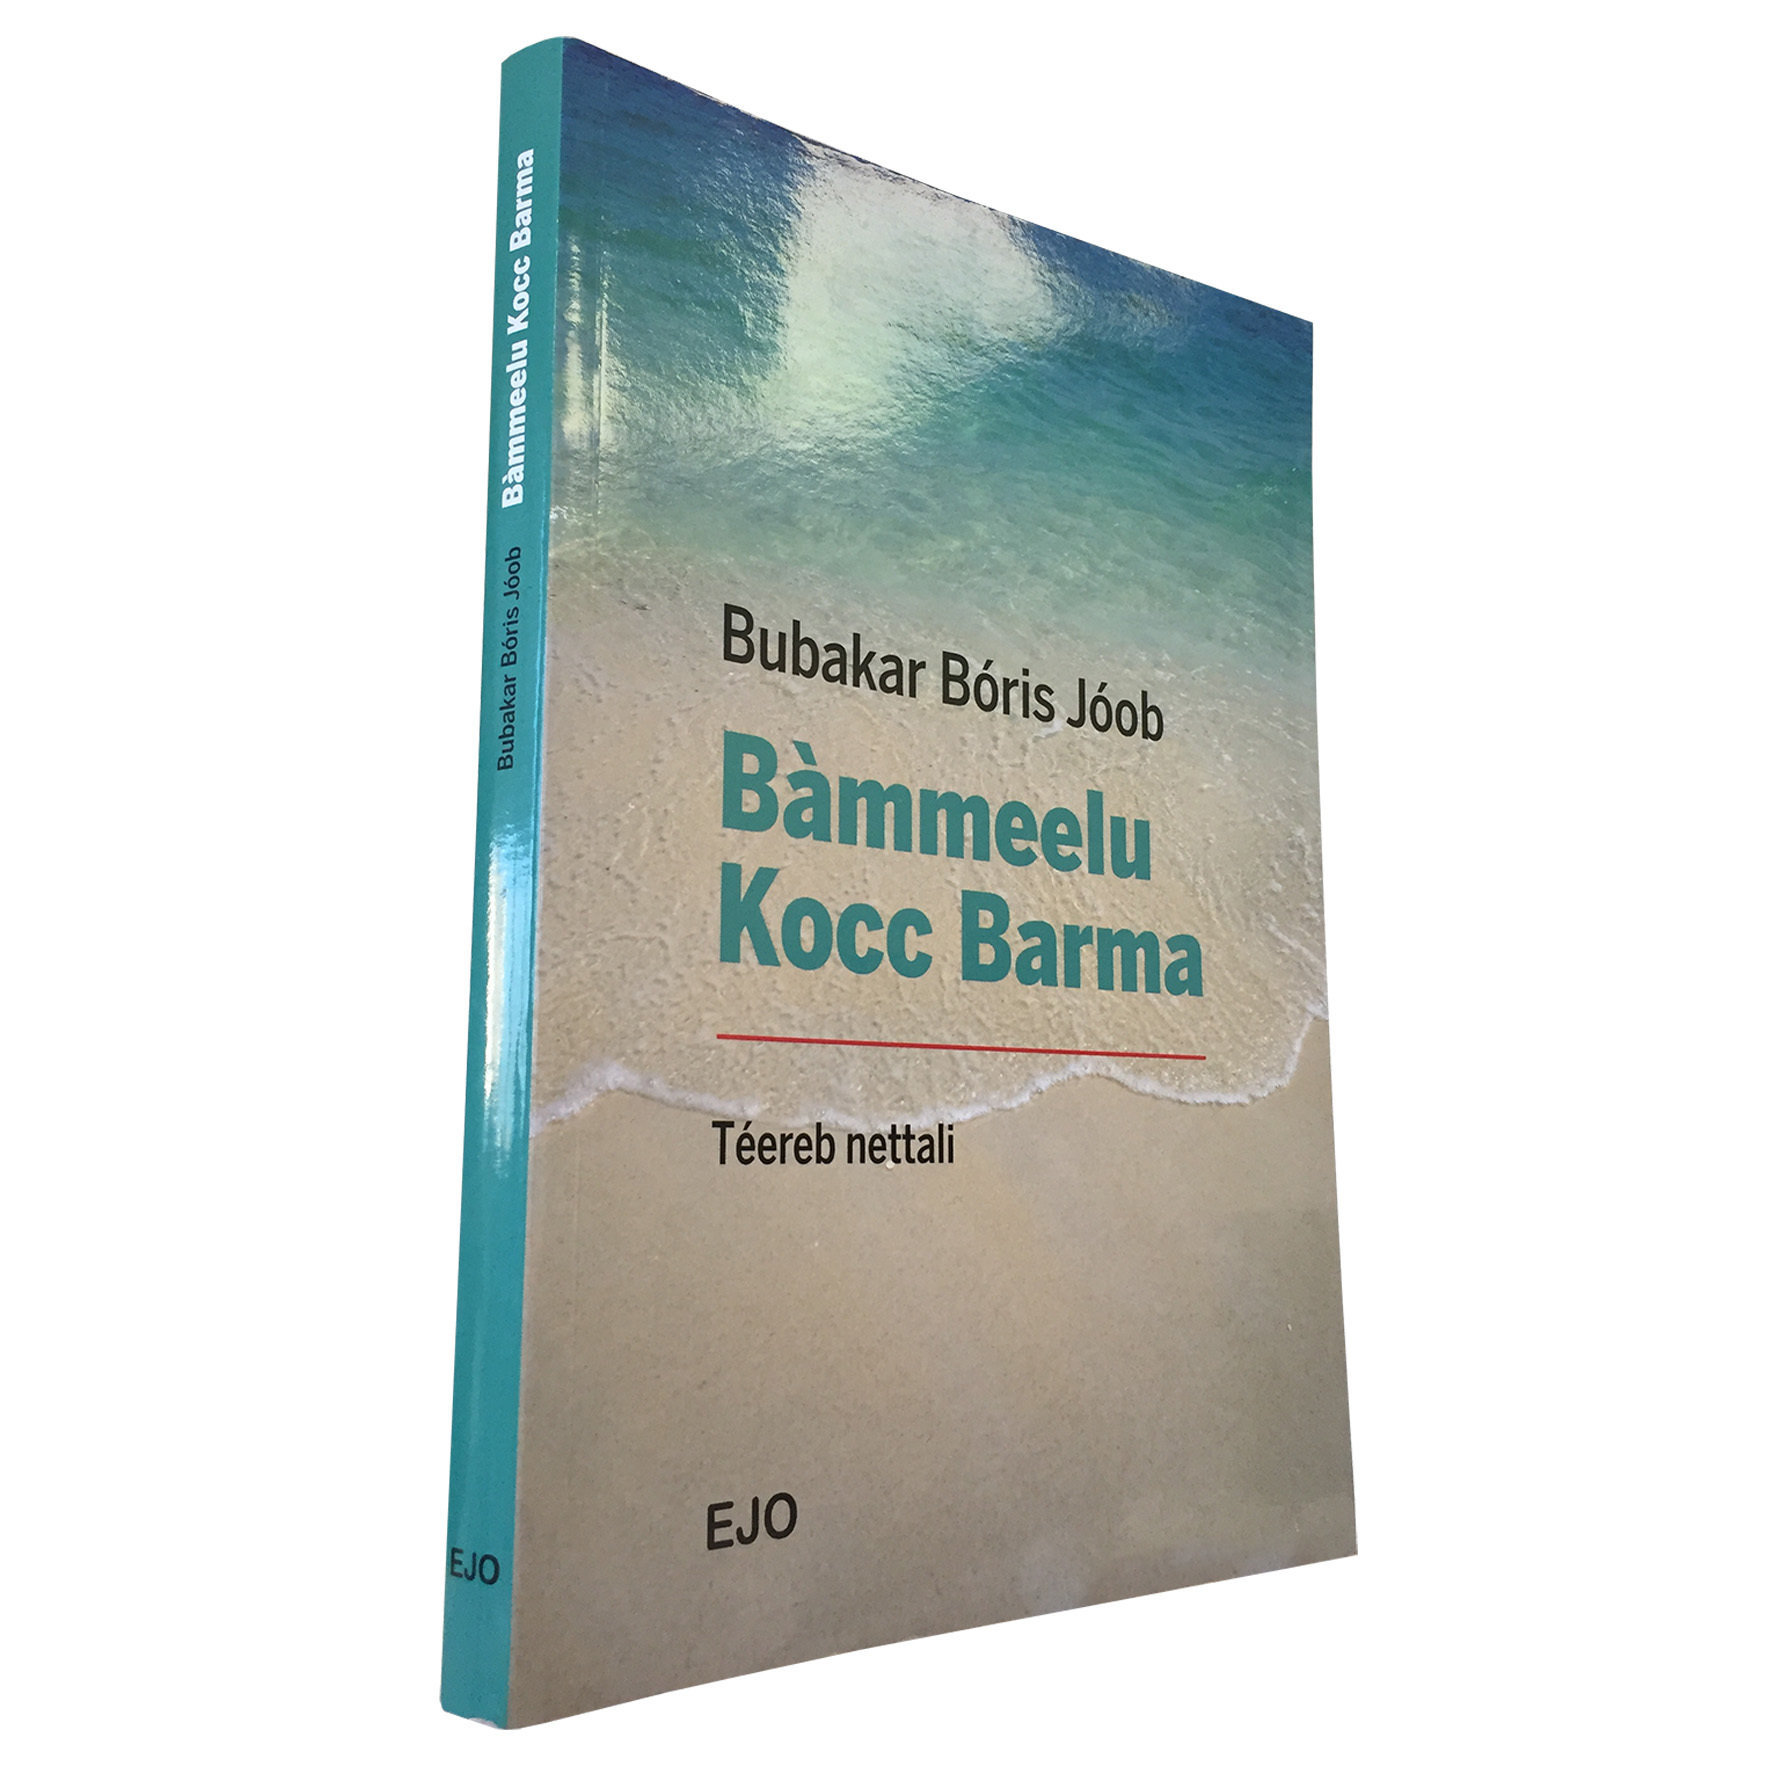 Bàmmeelu Kocc Barma by Bubakar Bóris Jóob (Signed by Author) BB01